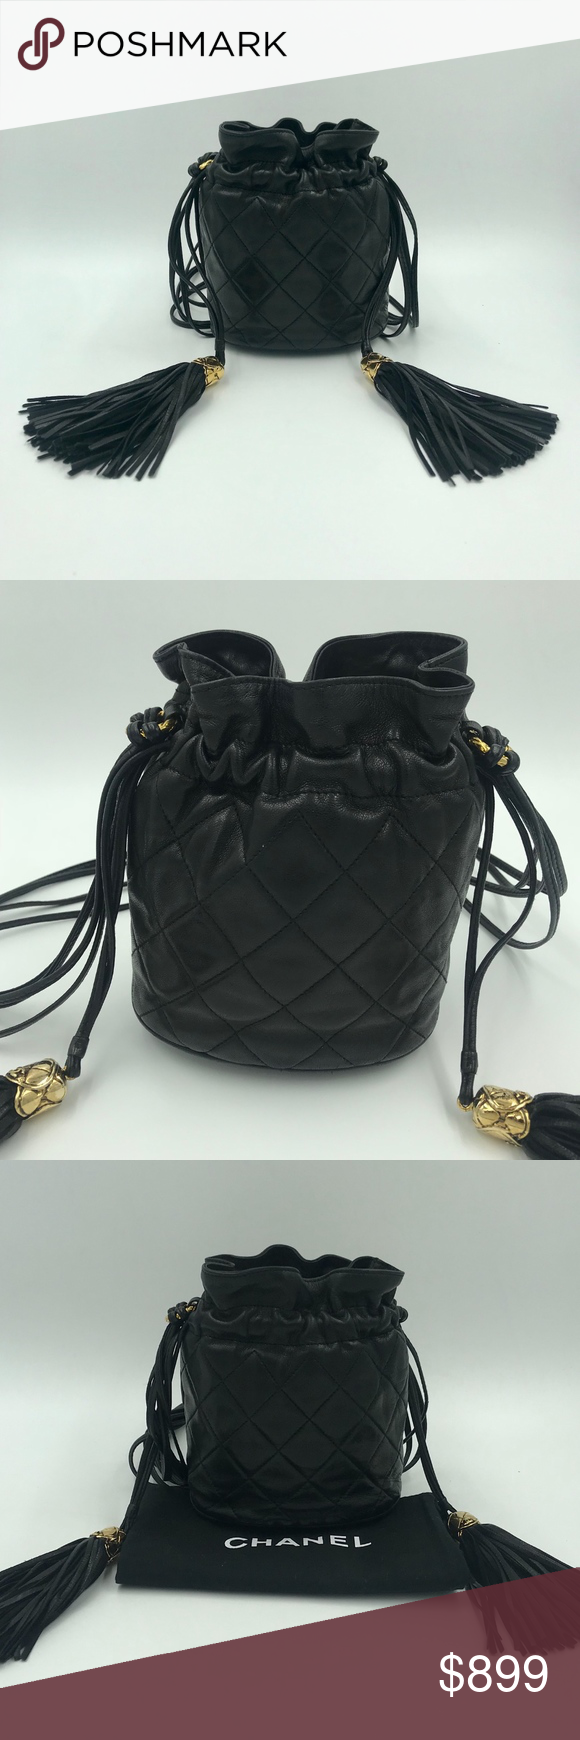 cf9d9d7ffb1d34 Authentic Vintage CHANEL Mini Tassel Bucket Bag This is an authentic CHANEL  Mini Tassel Bucket Bag